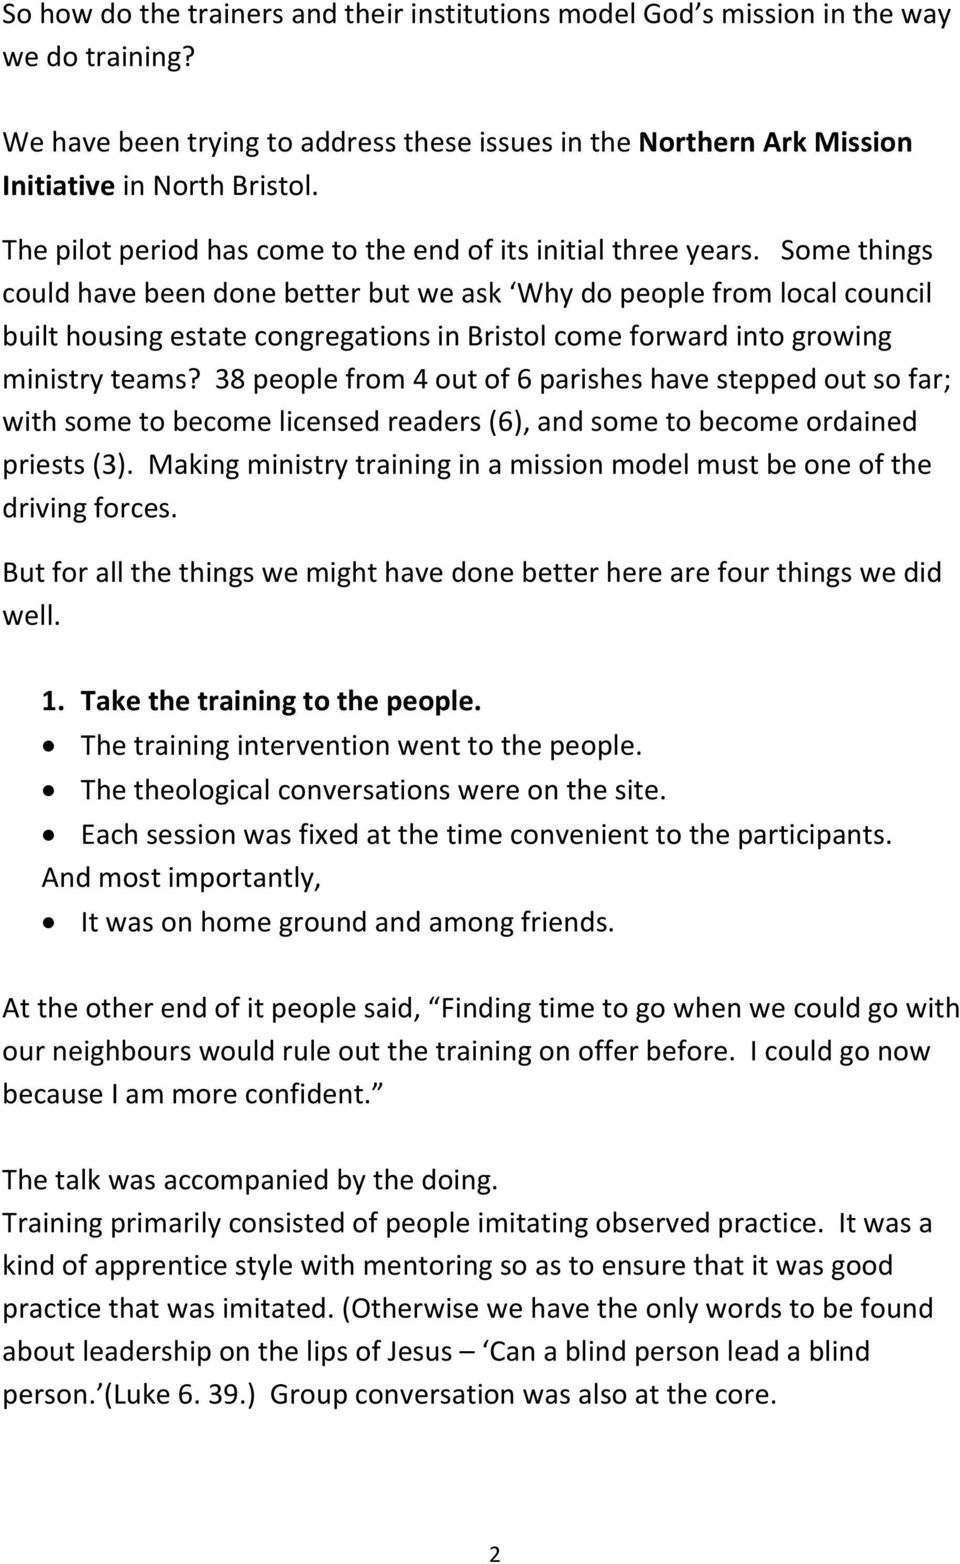 Some things could have been done better but we ask Why do people from local council built housing estate congregations in Bristol come forward into growing ministry teams?